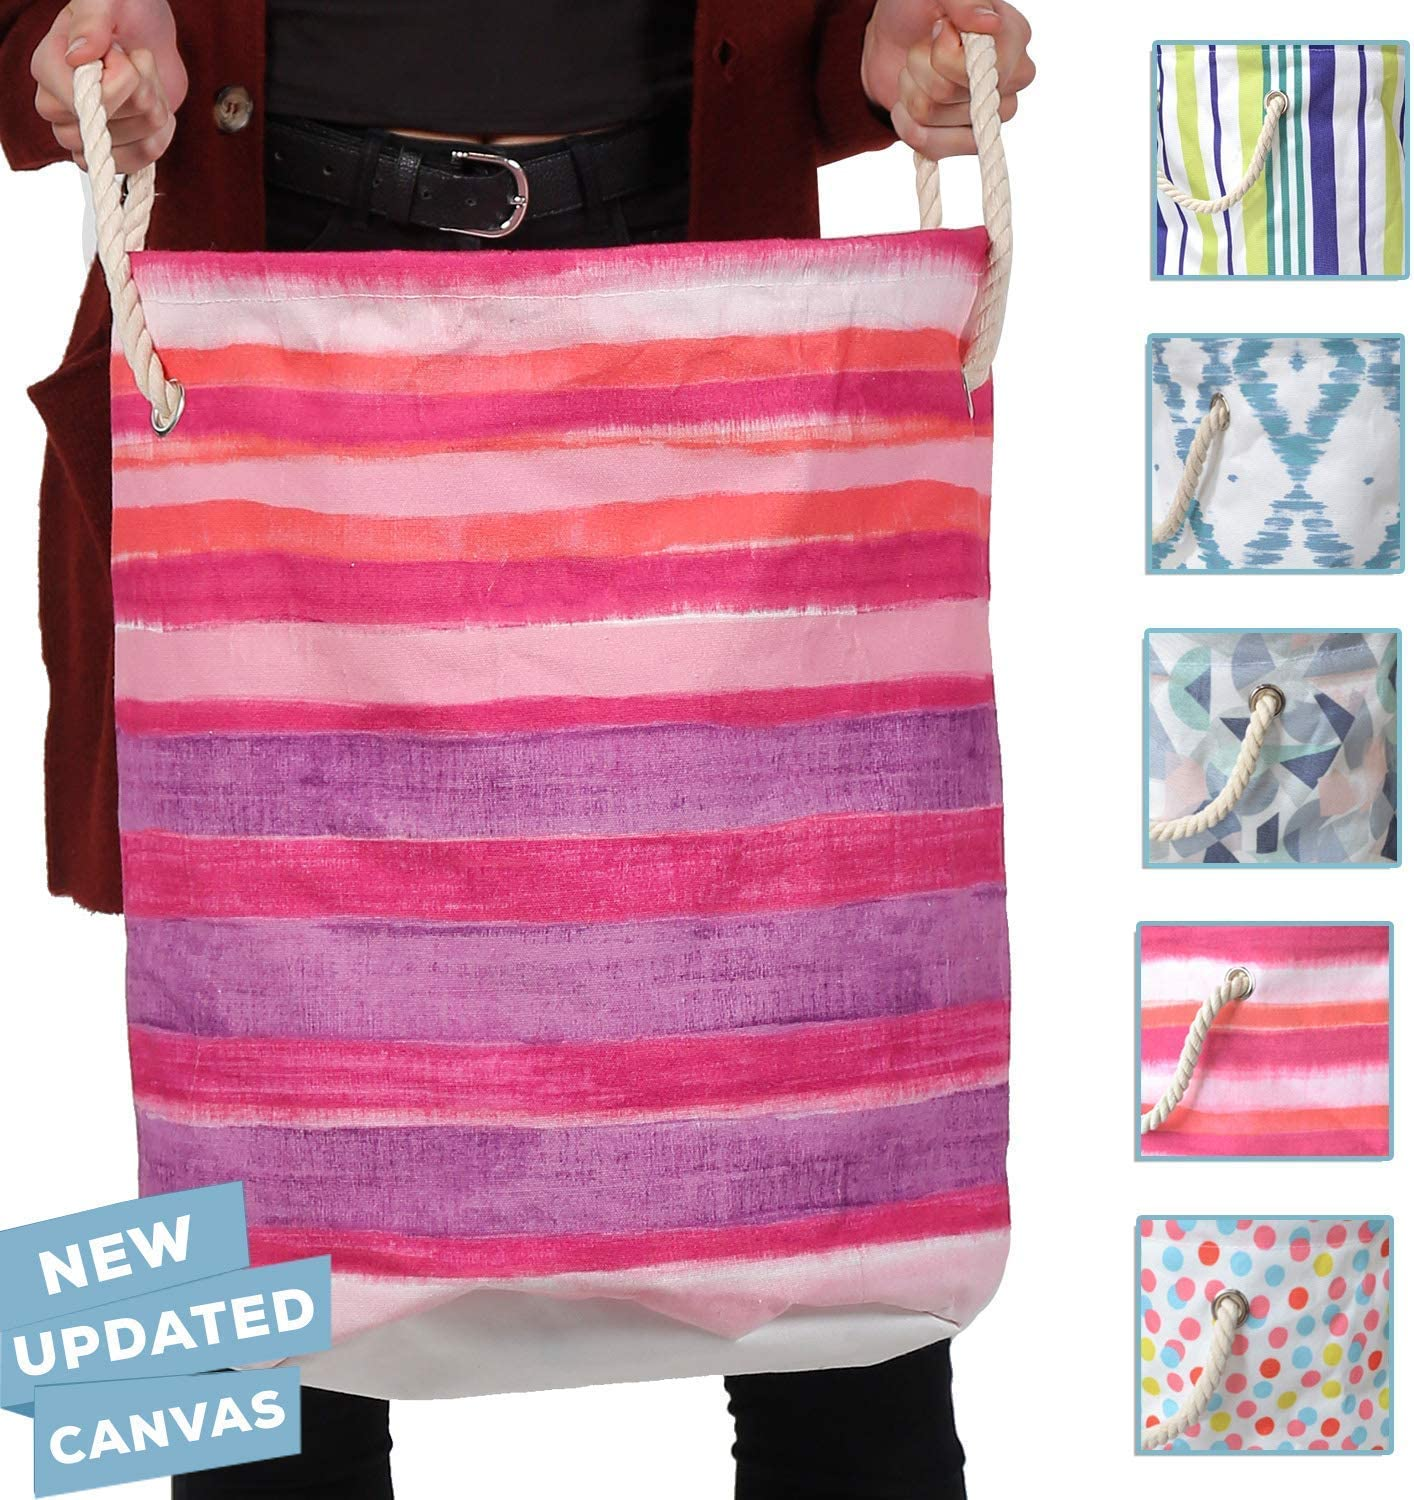 86 York Designer Laundry Hampers with Rope Handles (Pink Purple Stripes)